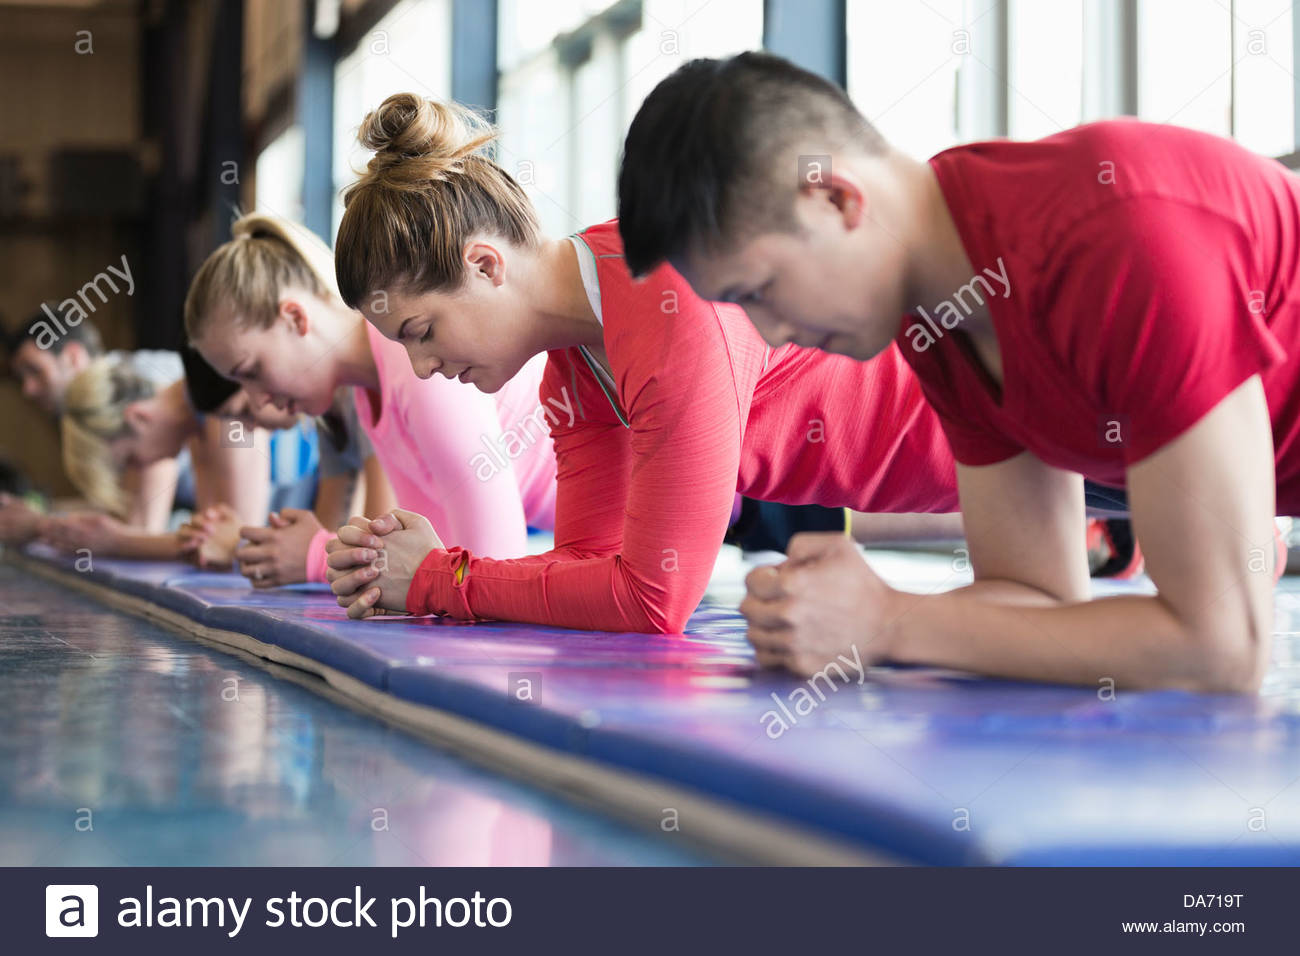 Group of people exercising in fitness class - Stock Image